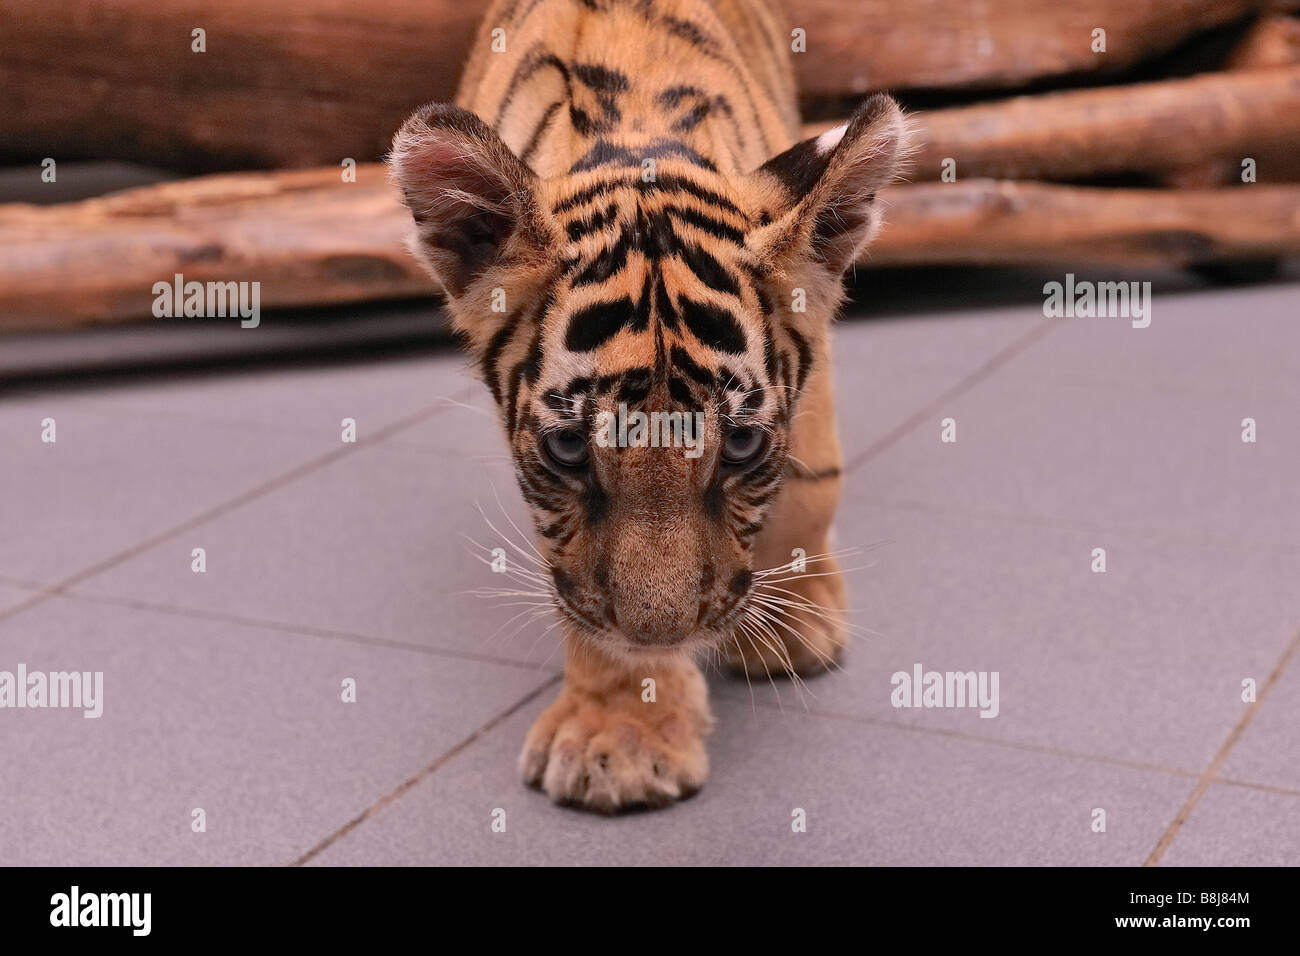 Zoo animal cute tiger cub bengal tiger stock photos zoo animal cute bengal tiger cub stock image thecheapjerseys Image collections